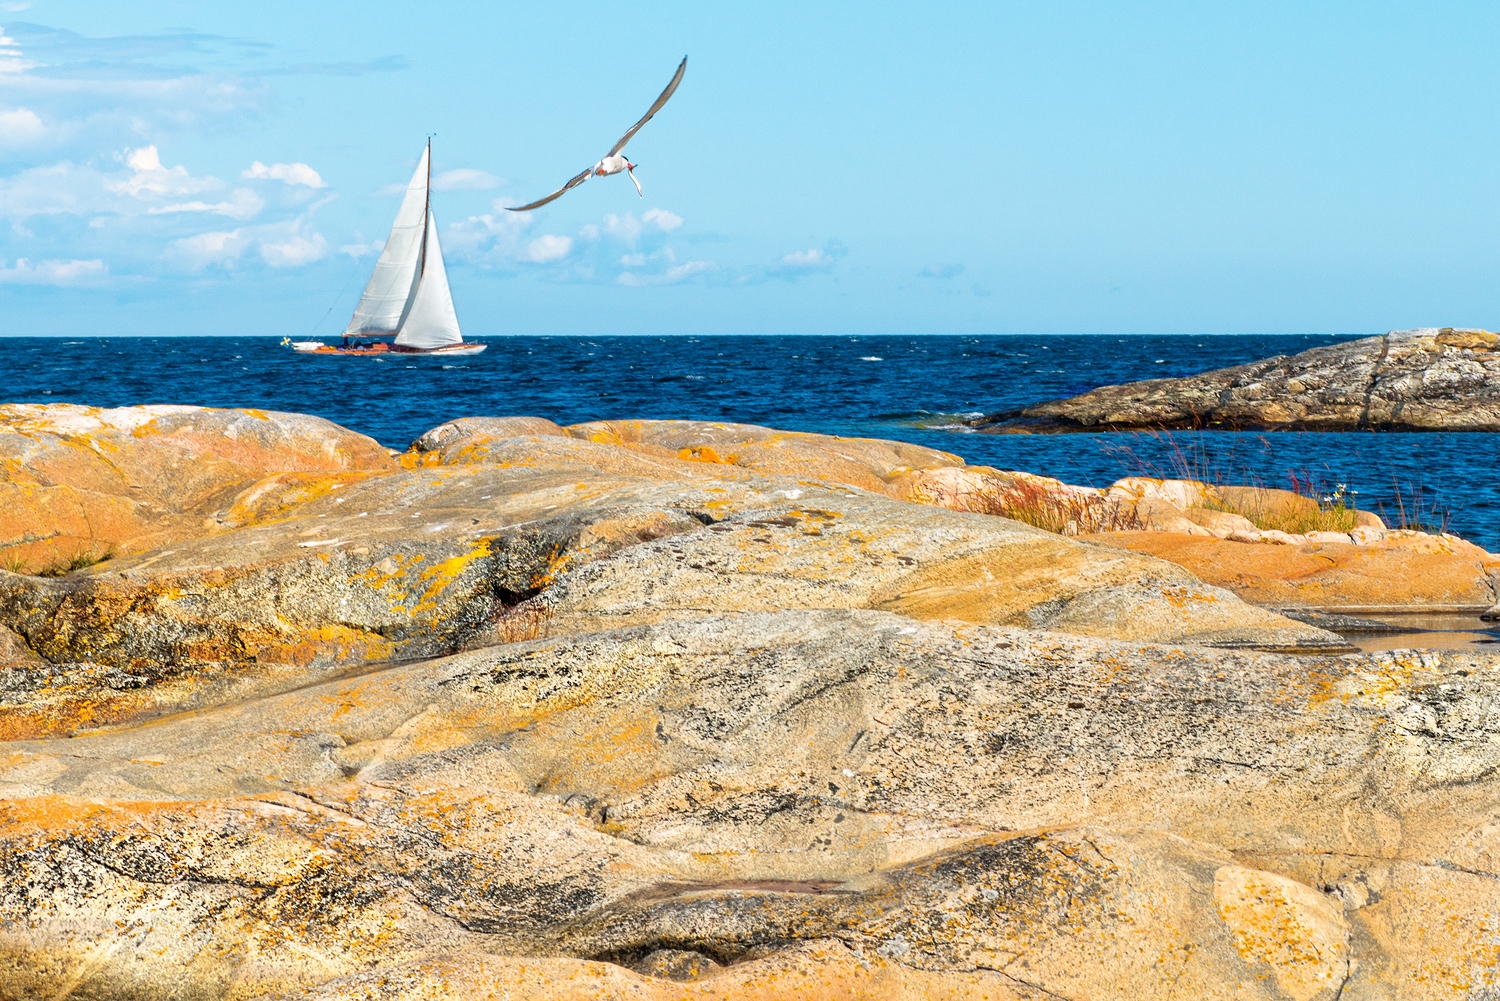 OUTER HVALER NATIONAL PARK